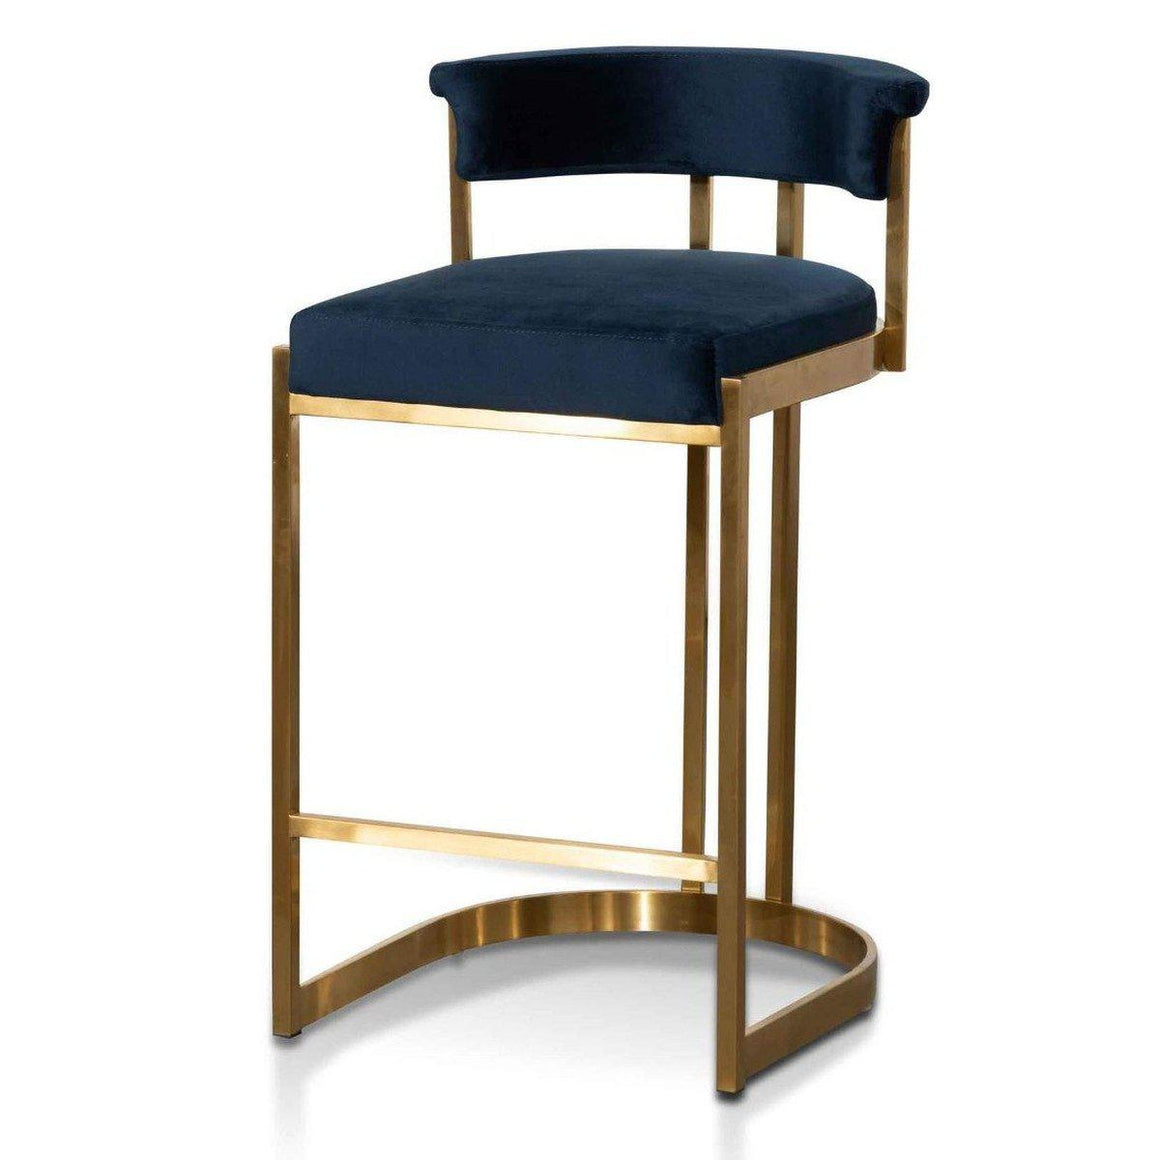 Adela Indigo Velvet Bar Stool with gold frame SAVA & CO